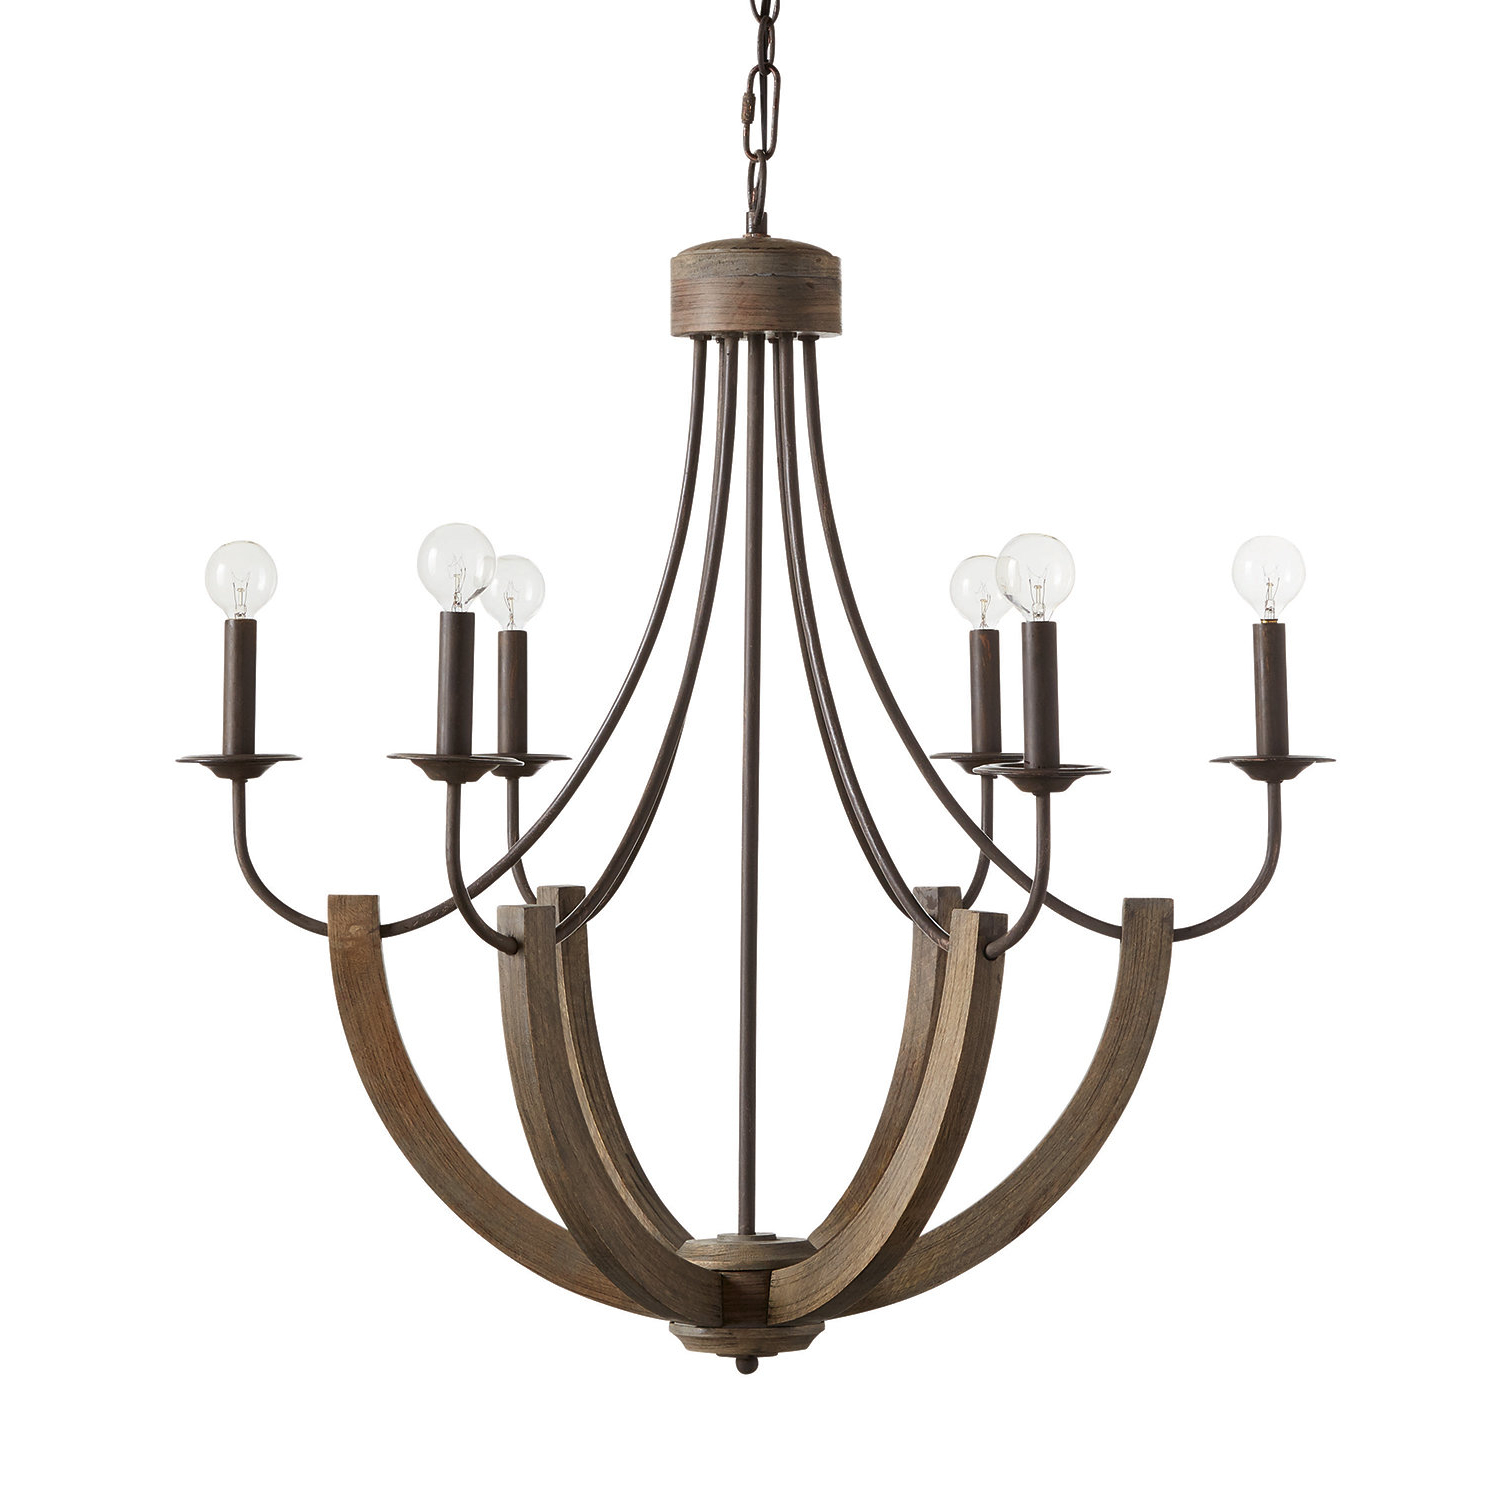 Most Current Verona 6 Light Candle Style Chandelier Pertaining To Armande Candle Style Chandeliers (View 14 of 25)